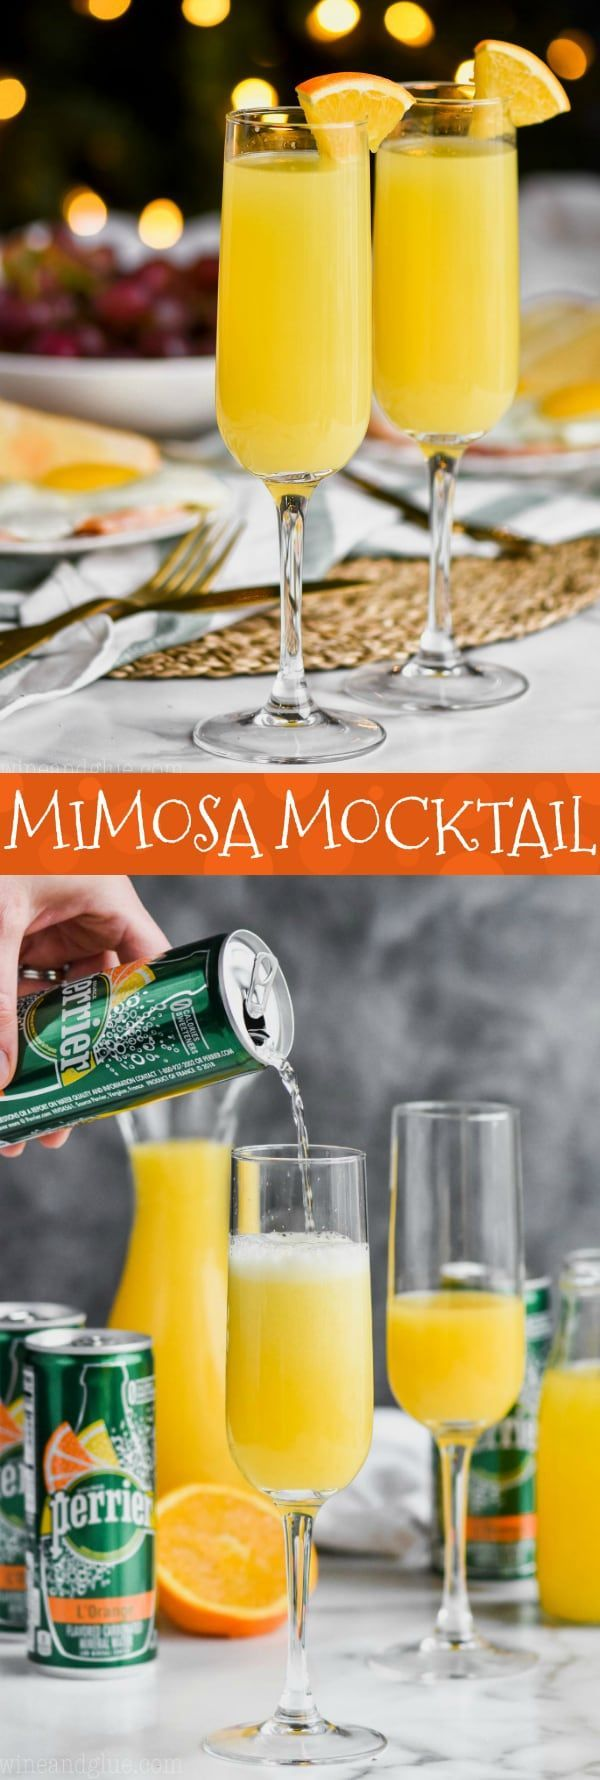 This Non Alcoholic Mimosa recipe or Mimosa Mocktail is the perfect brunch drink when you are trying to cut back on calories and lighten things up.  Made with just a few ingredients, this mimosa is going to shock you with how delicious and refreshing it is! #mimosa #mocktail #ad #nonalcoholicbeverages